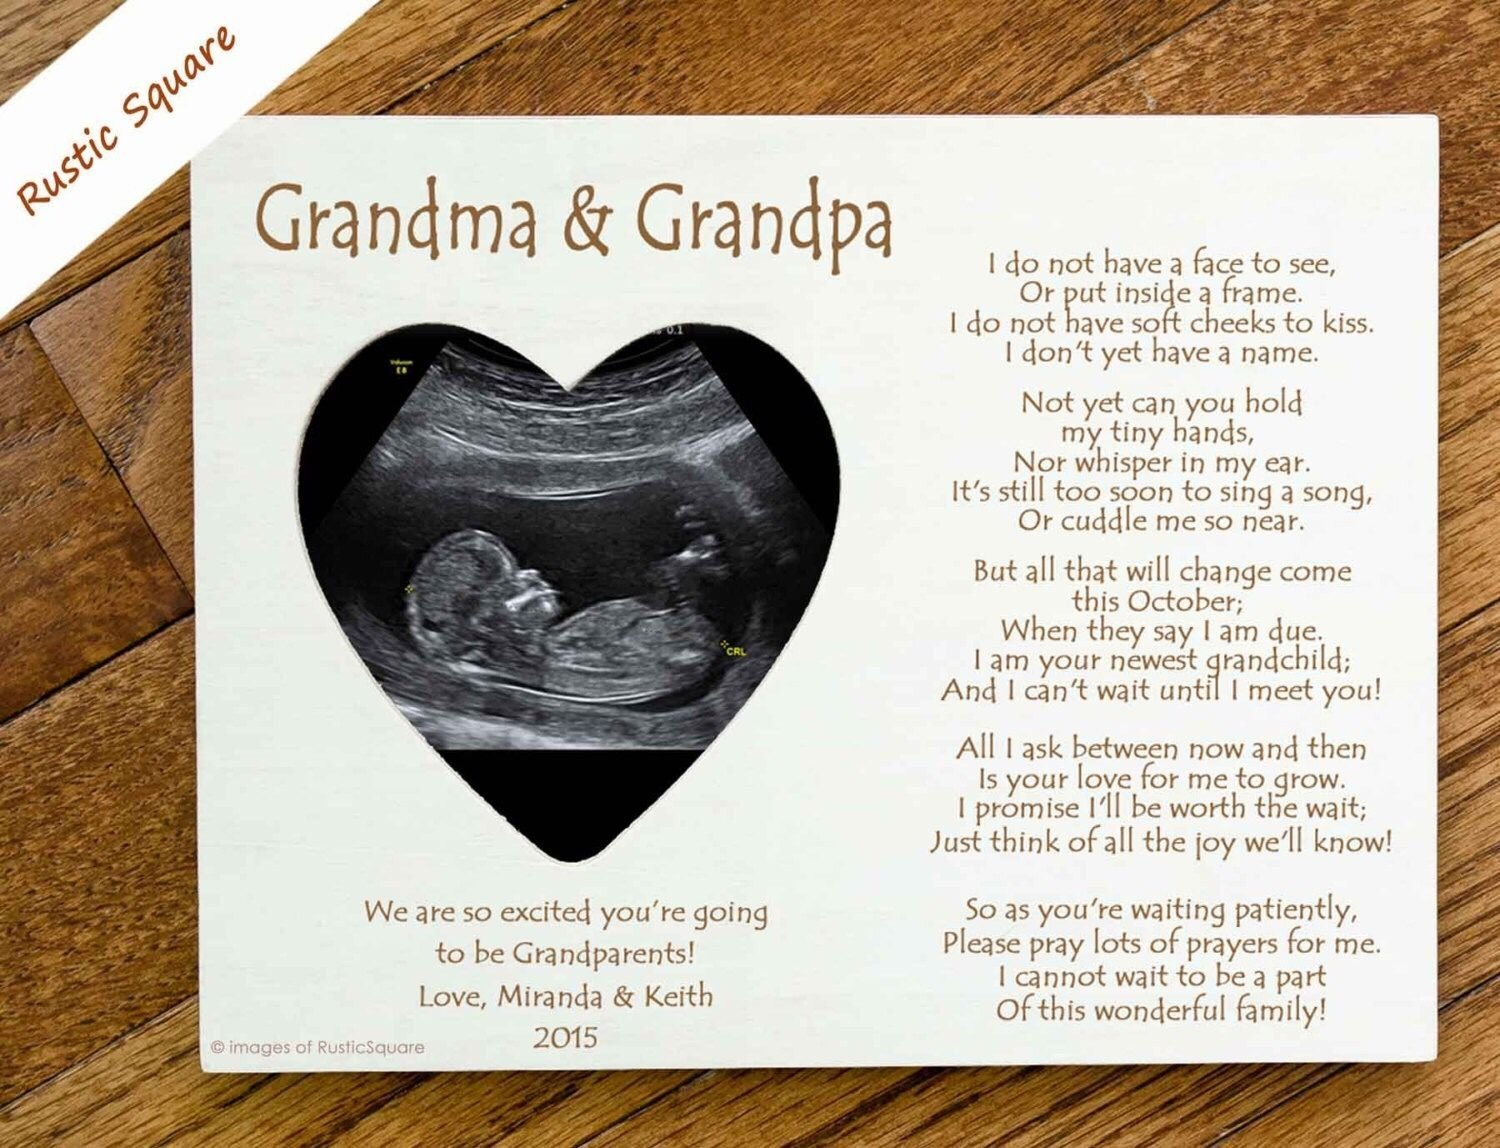 10 Stunning Pregnancy Announcement Ideas For Grandparents letter with a gift for grandparents pregnancy announced babies 1 2020